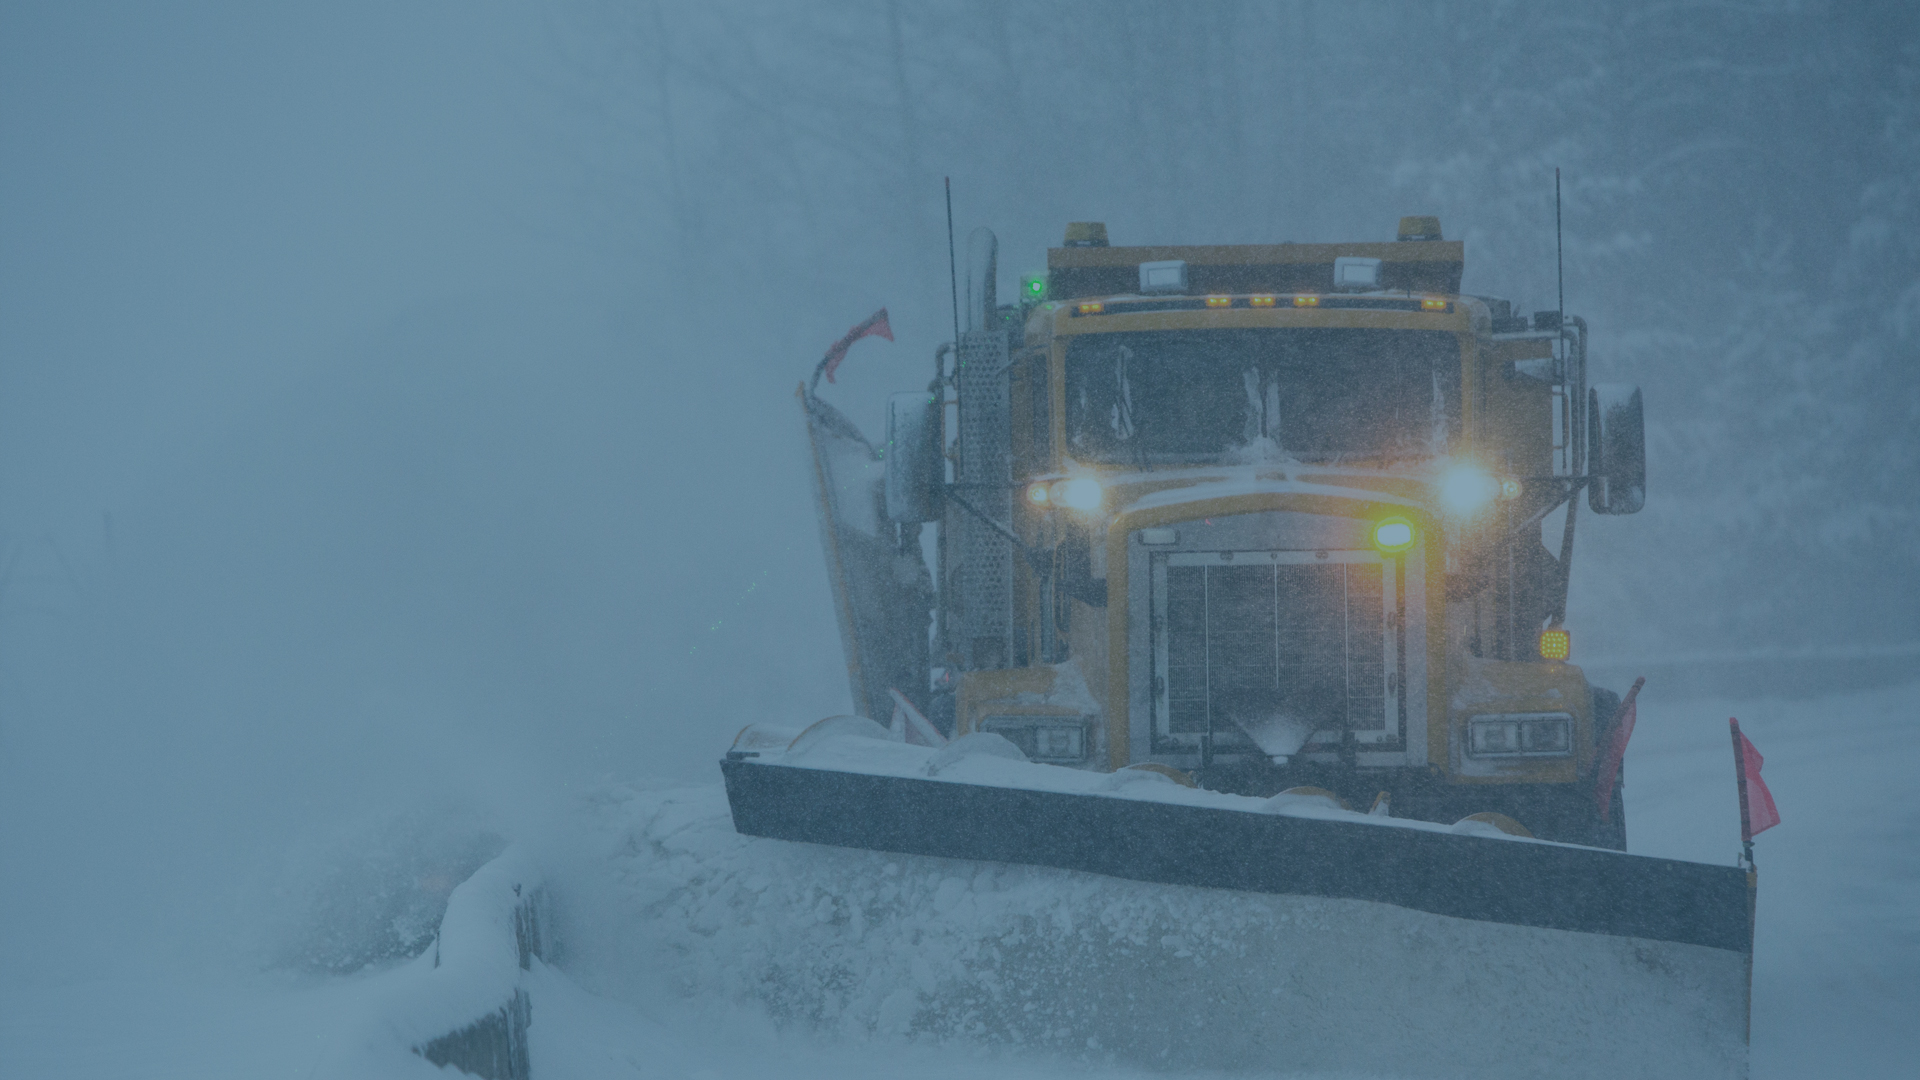 Snow plow - Municipal Government Wayfinders